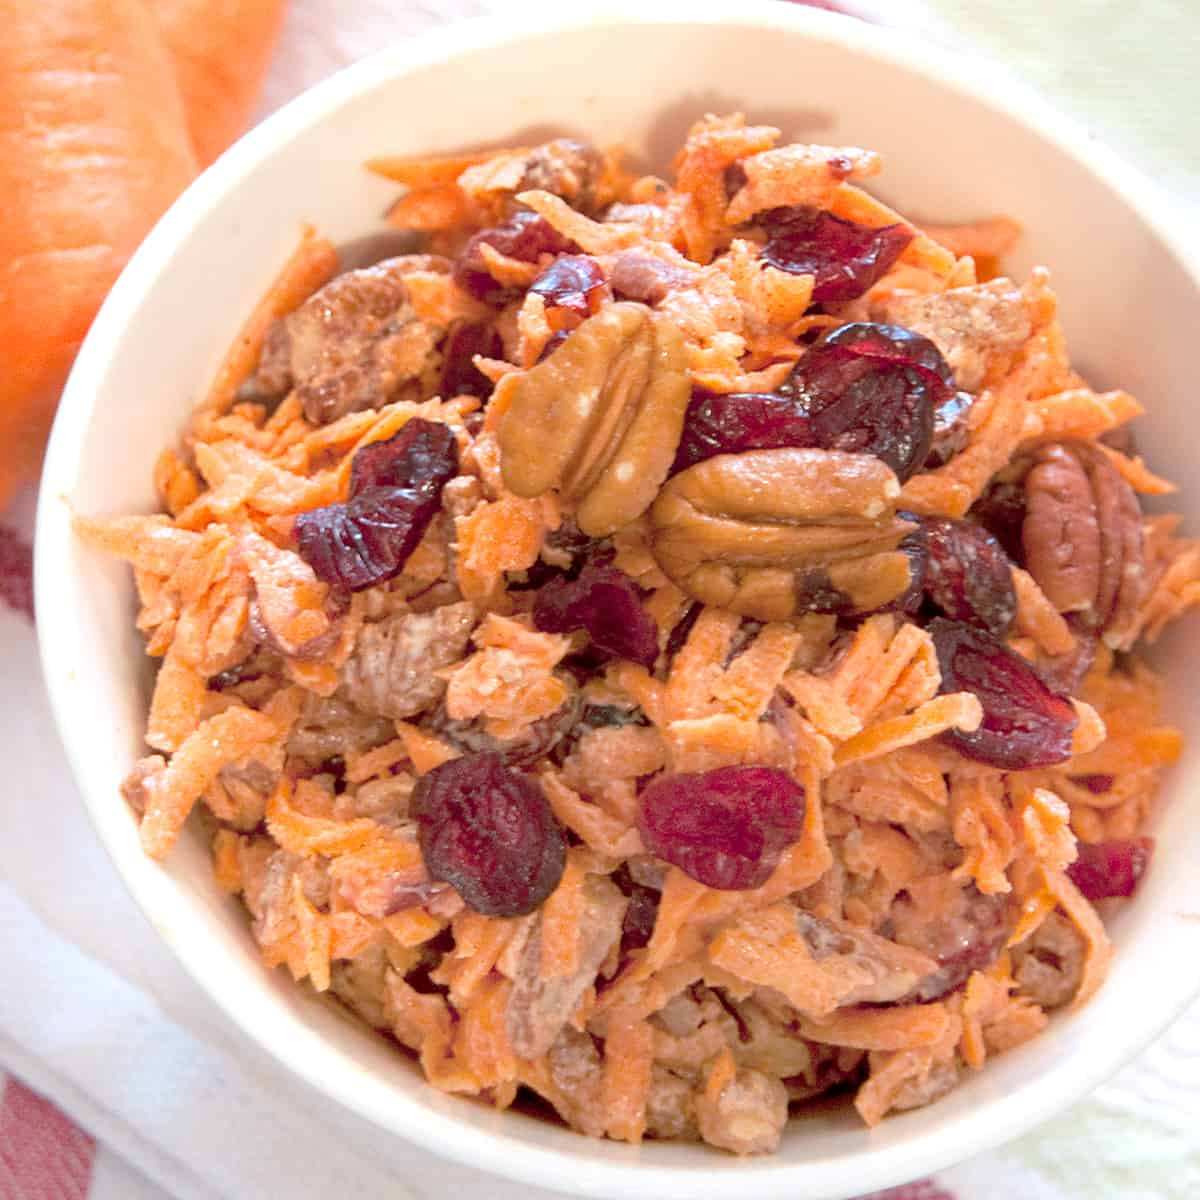 Carrot Cranberry Salad in a serving bowl on a kitchen towel.